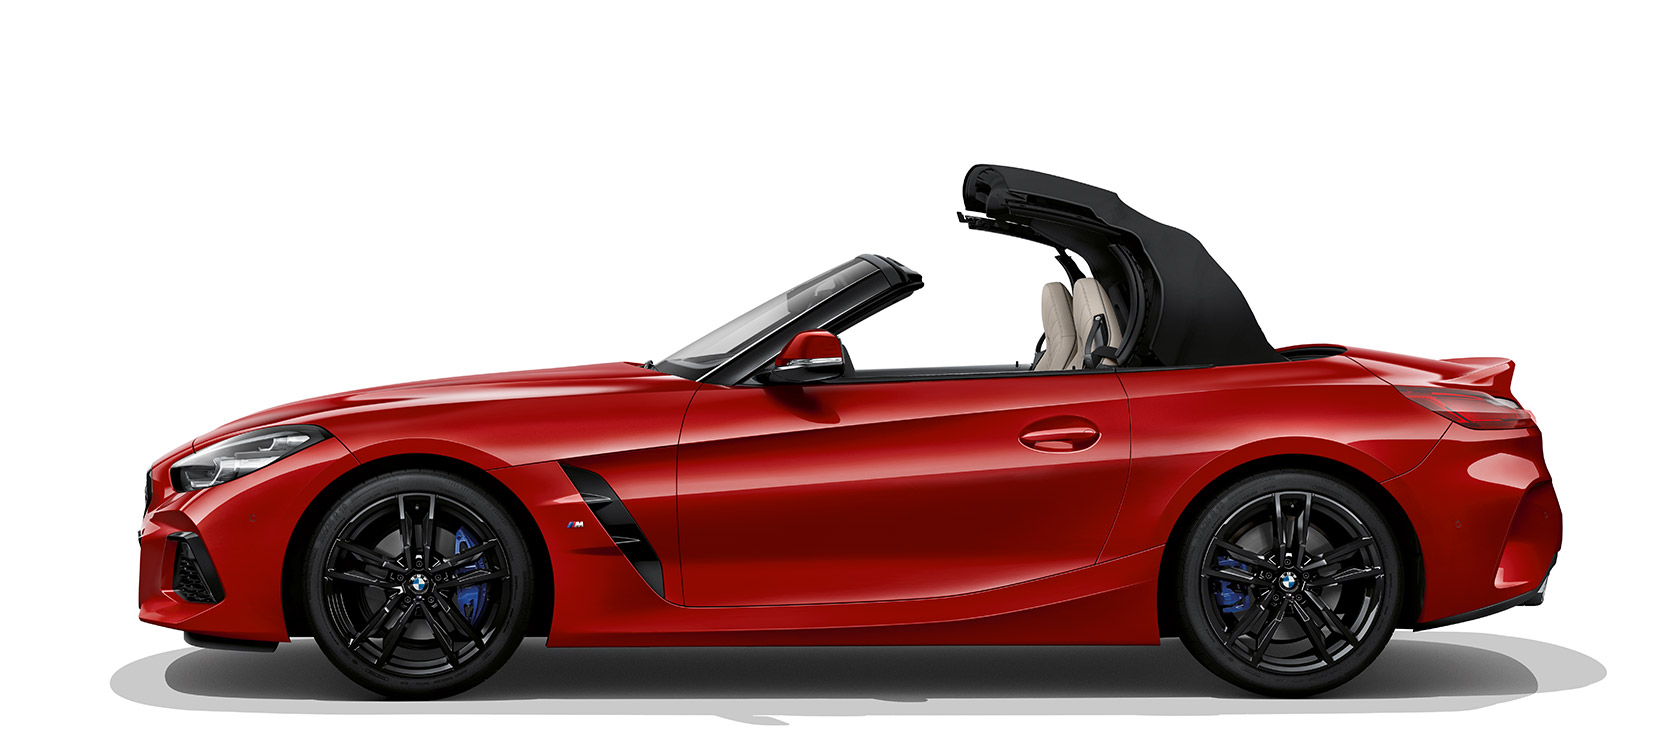 bmw z4 unroadster parmi les voitures de sport. Black Bedroom Furniture Sets. Home Design Ideas